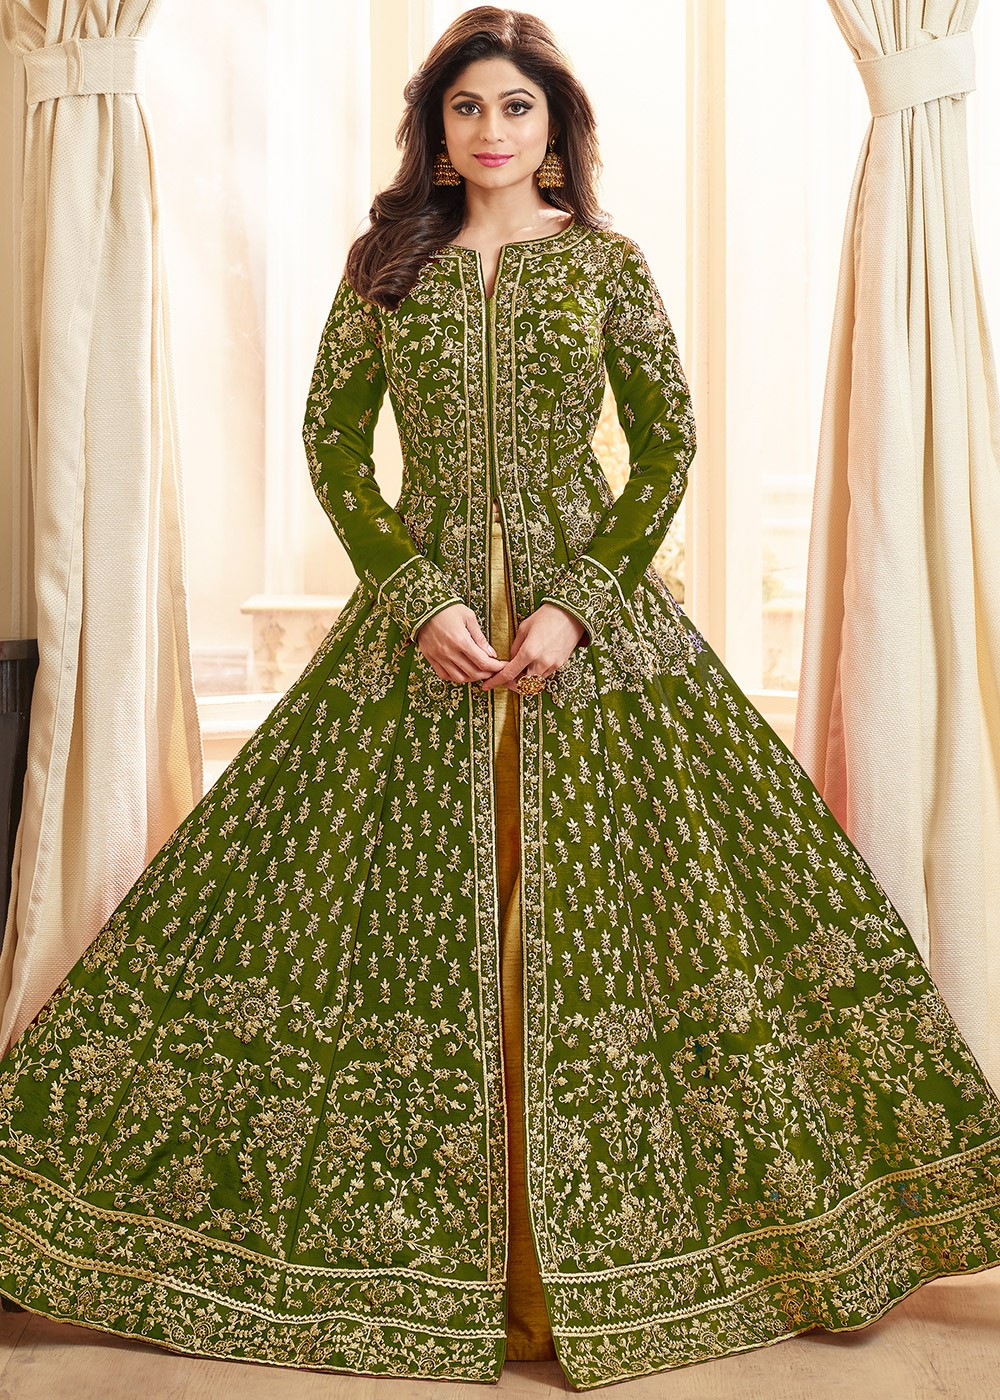 Shamita Shetty Green Kurti Style Lehenga Choli Latest 2276lg07